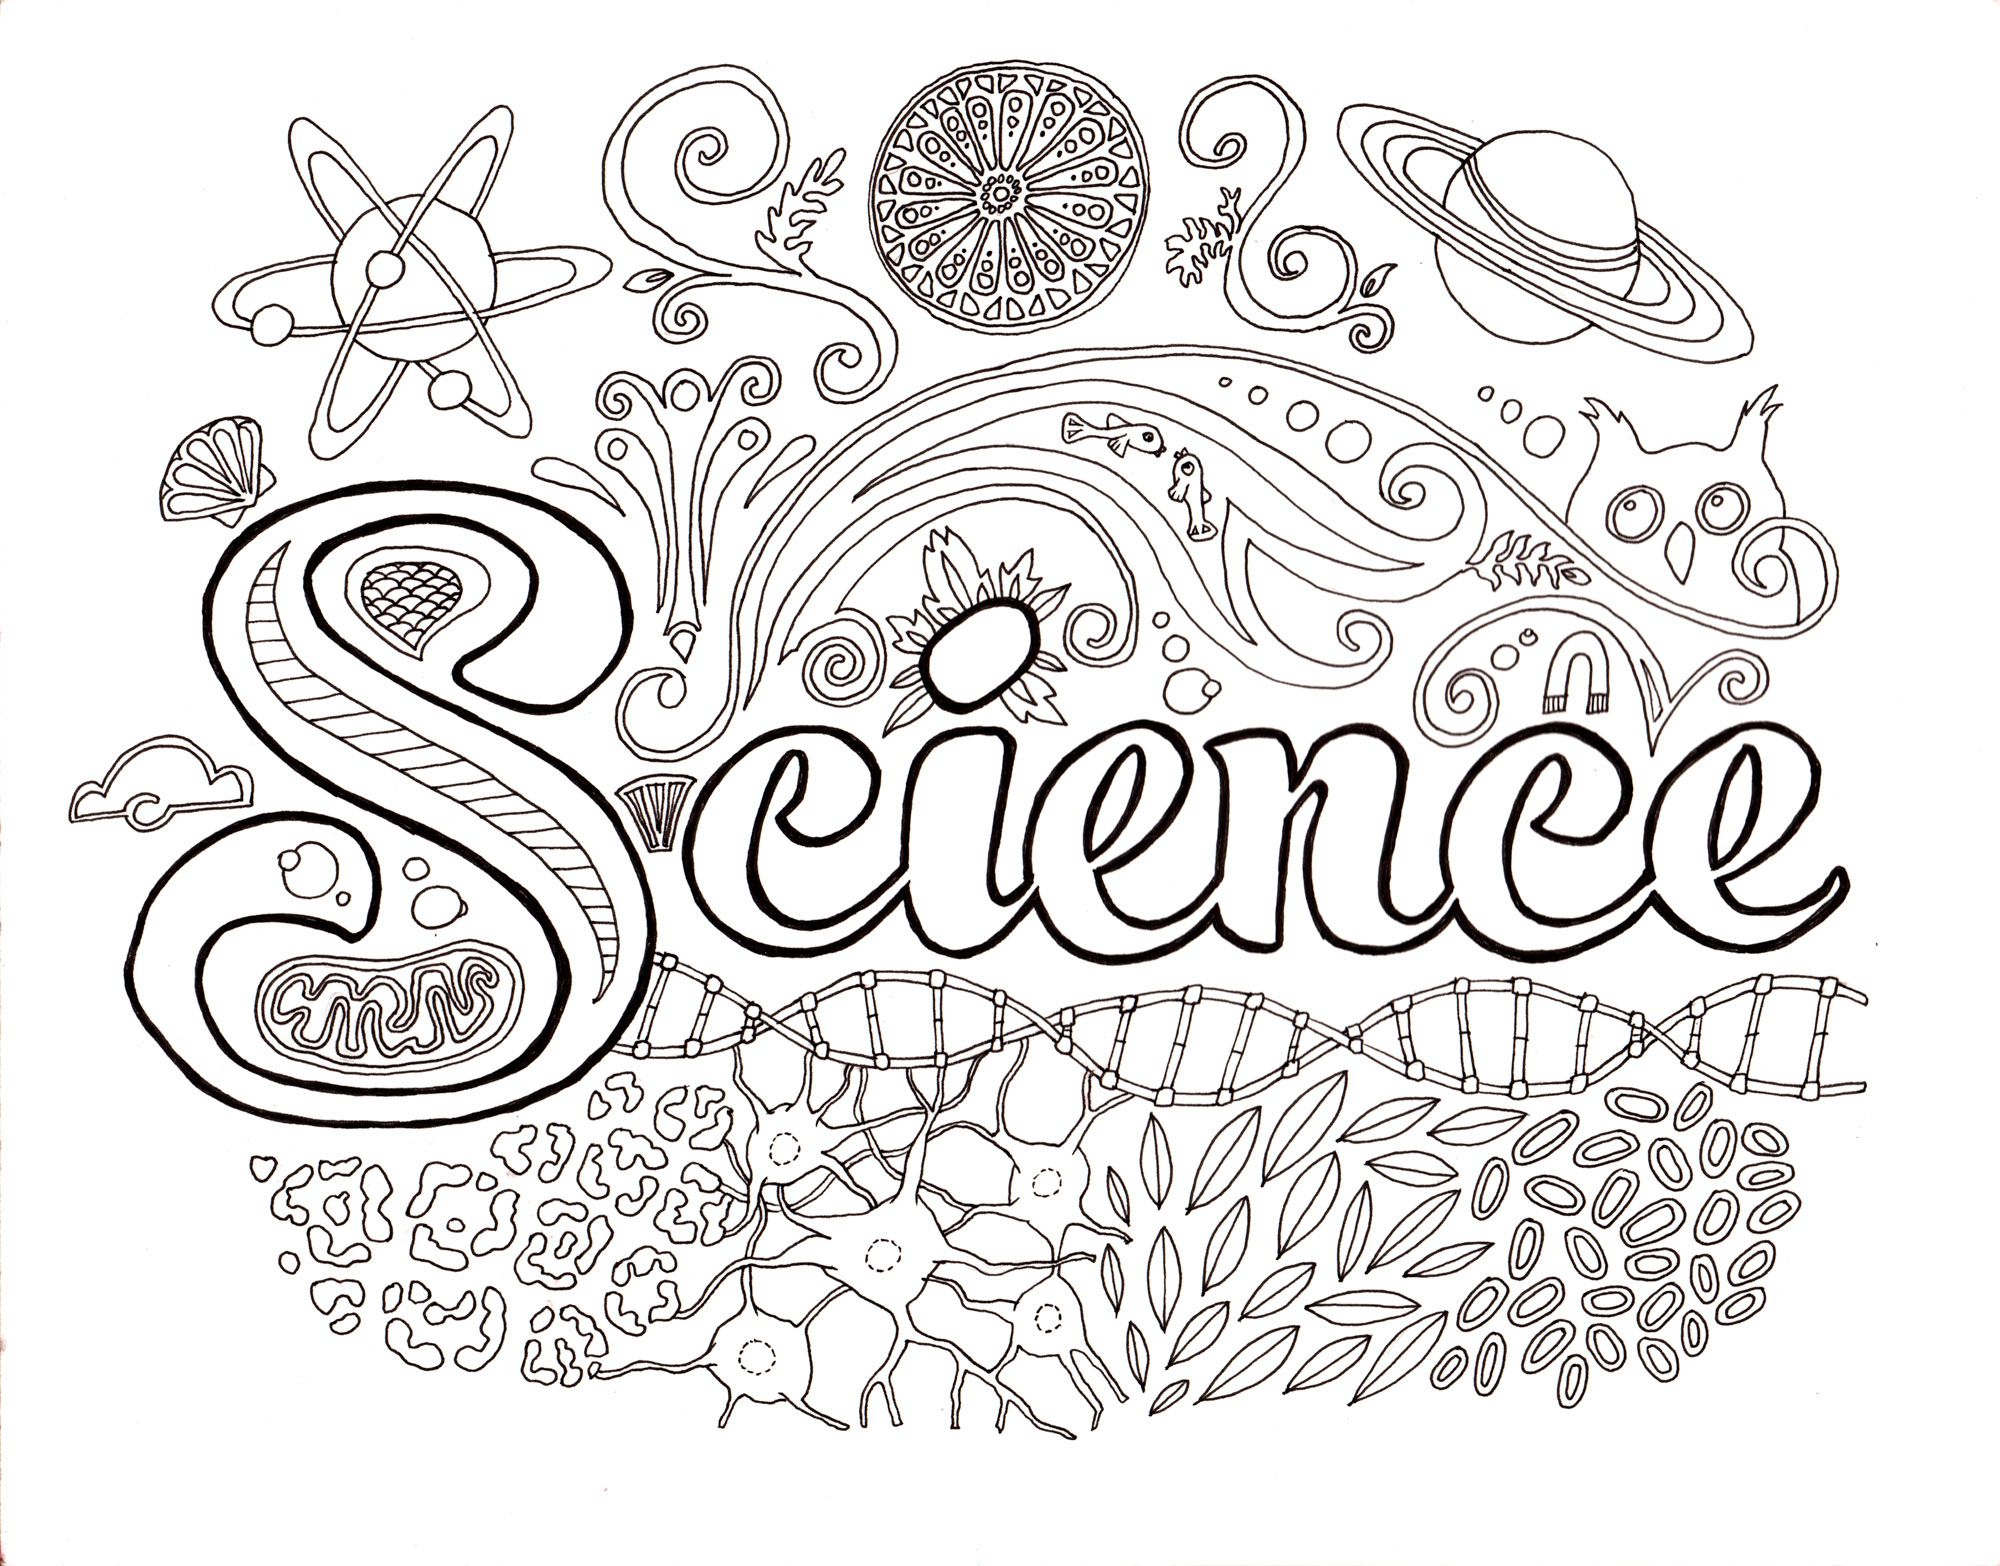 Coloring Pages On Pinterest Earth Science Coloring Pages Comfortable Page Pinterest Intended For